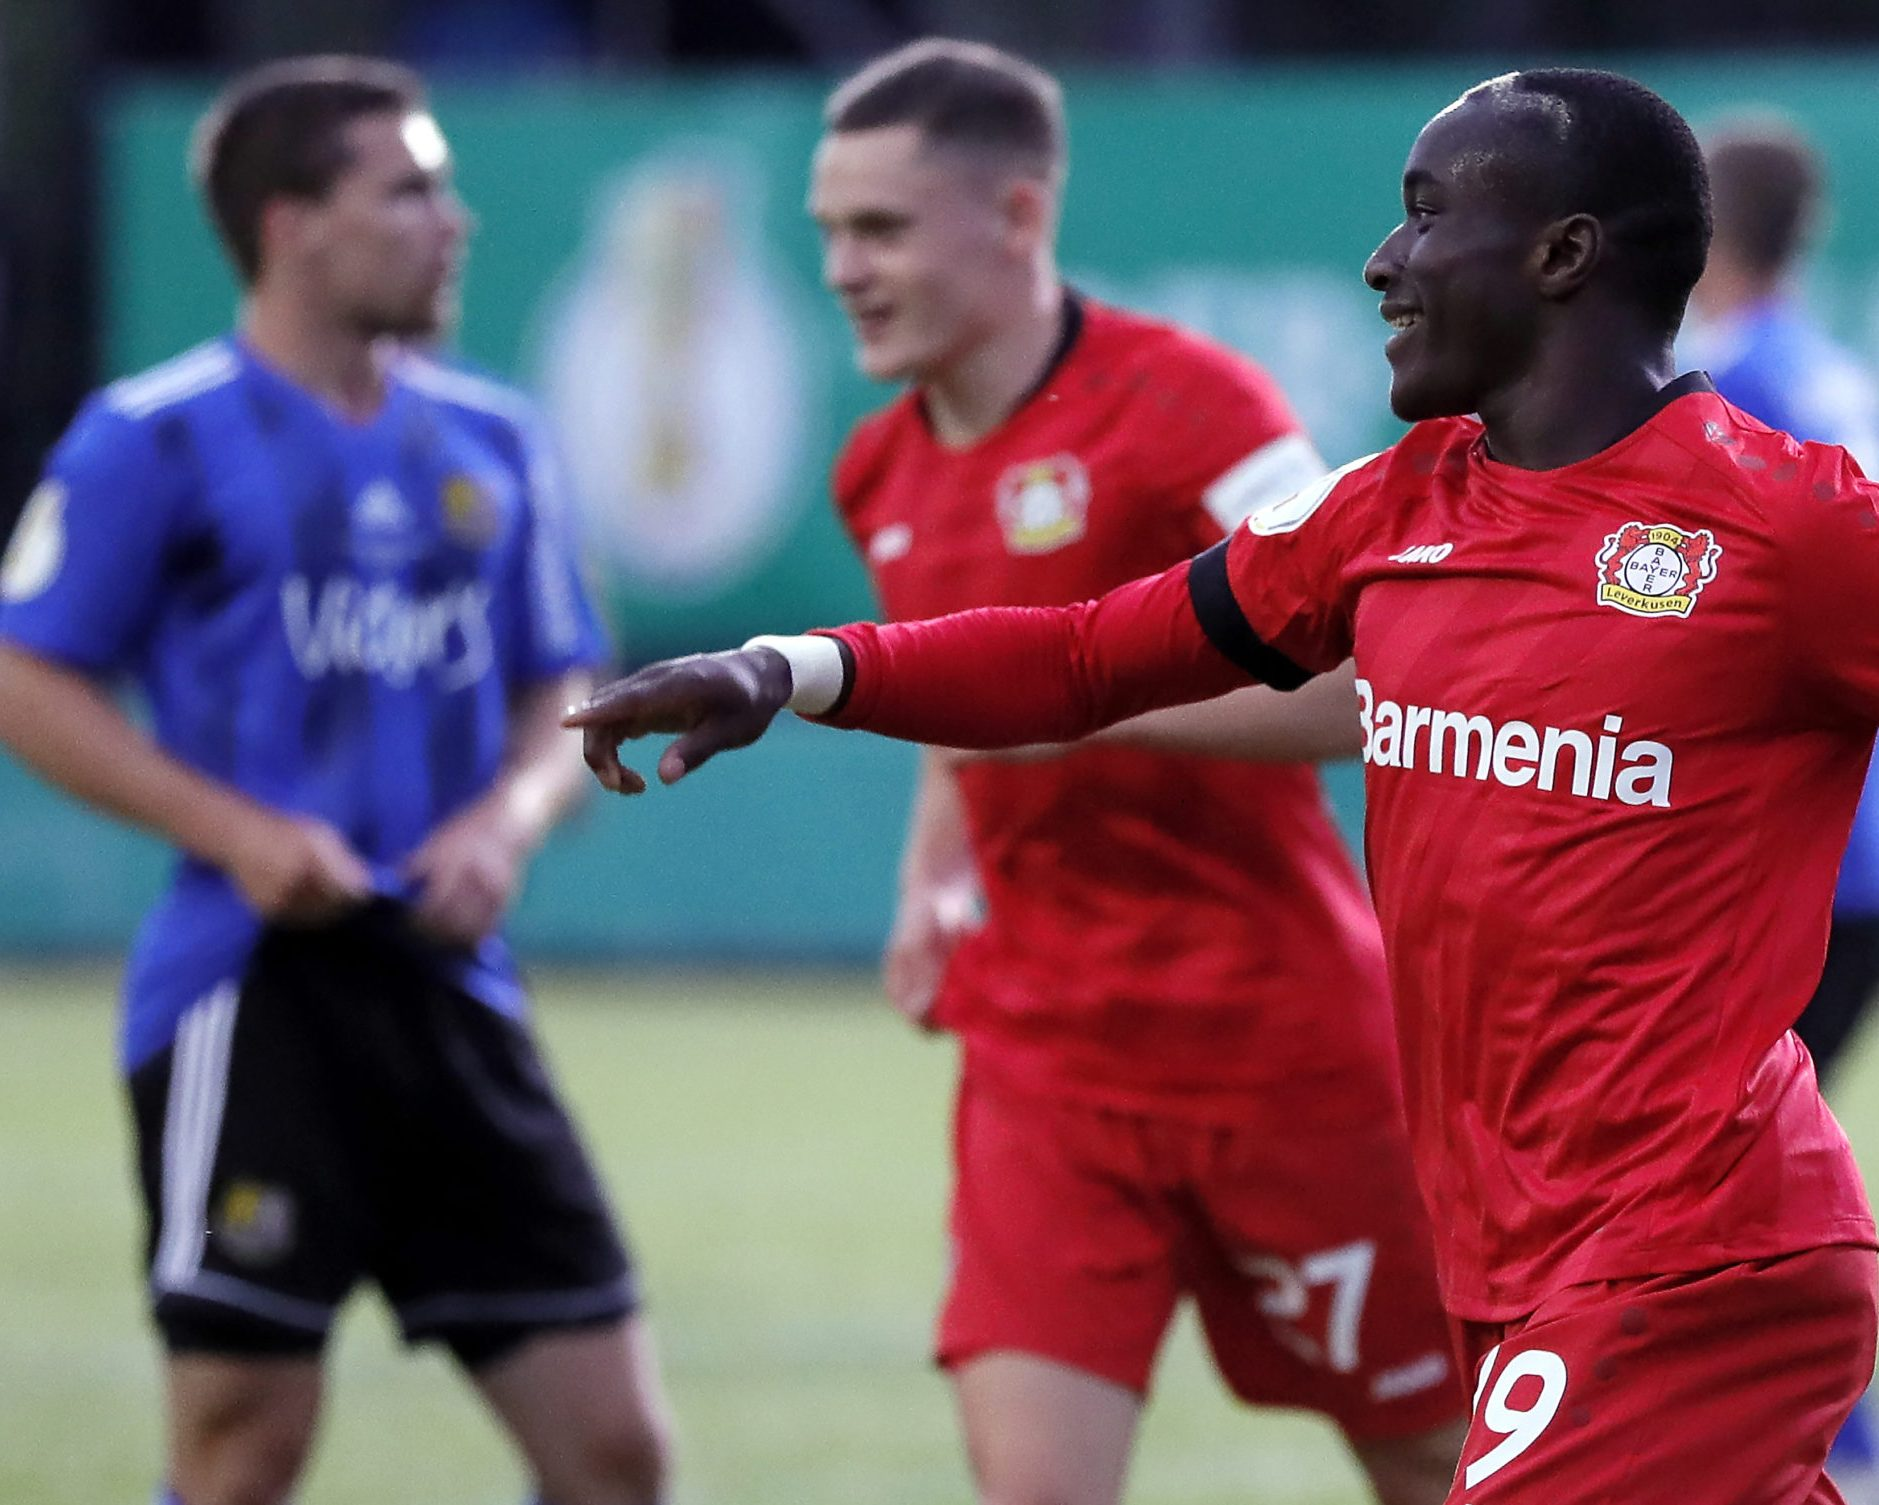 Bundesliga Bayer Leverkusen Ease Past Saarbrücken To Book Dfb Cup Final Spot